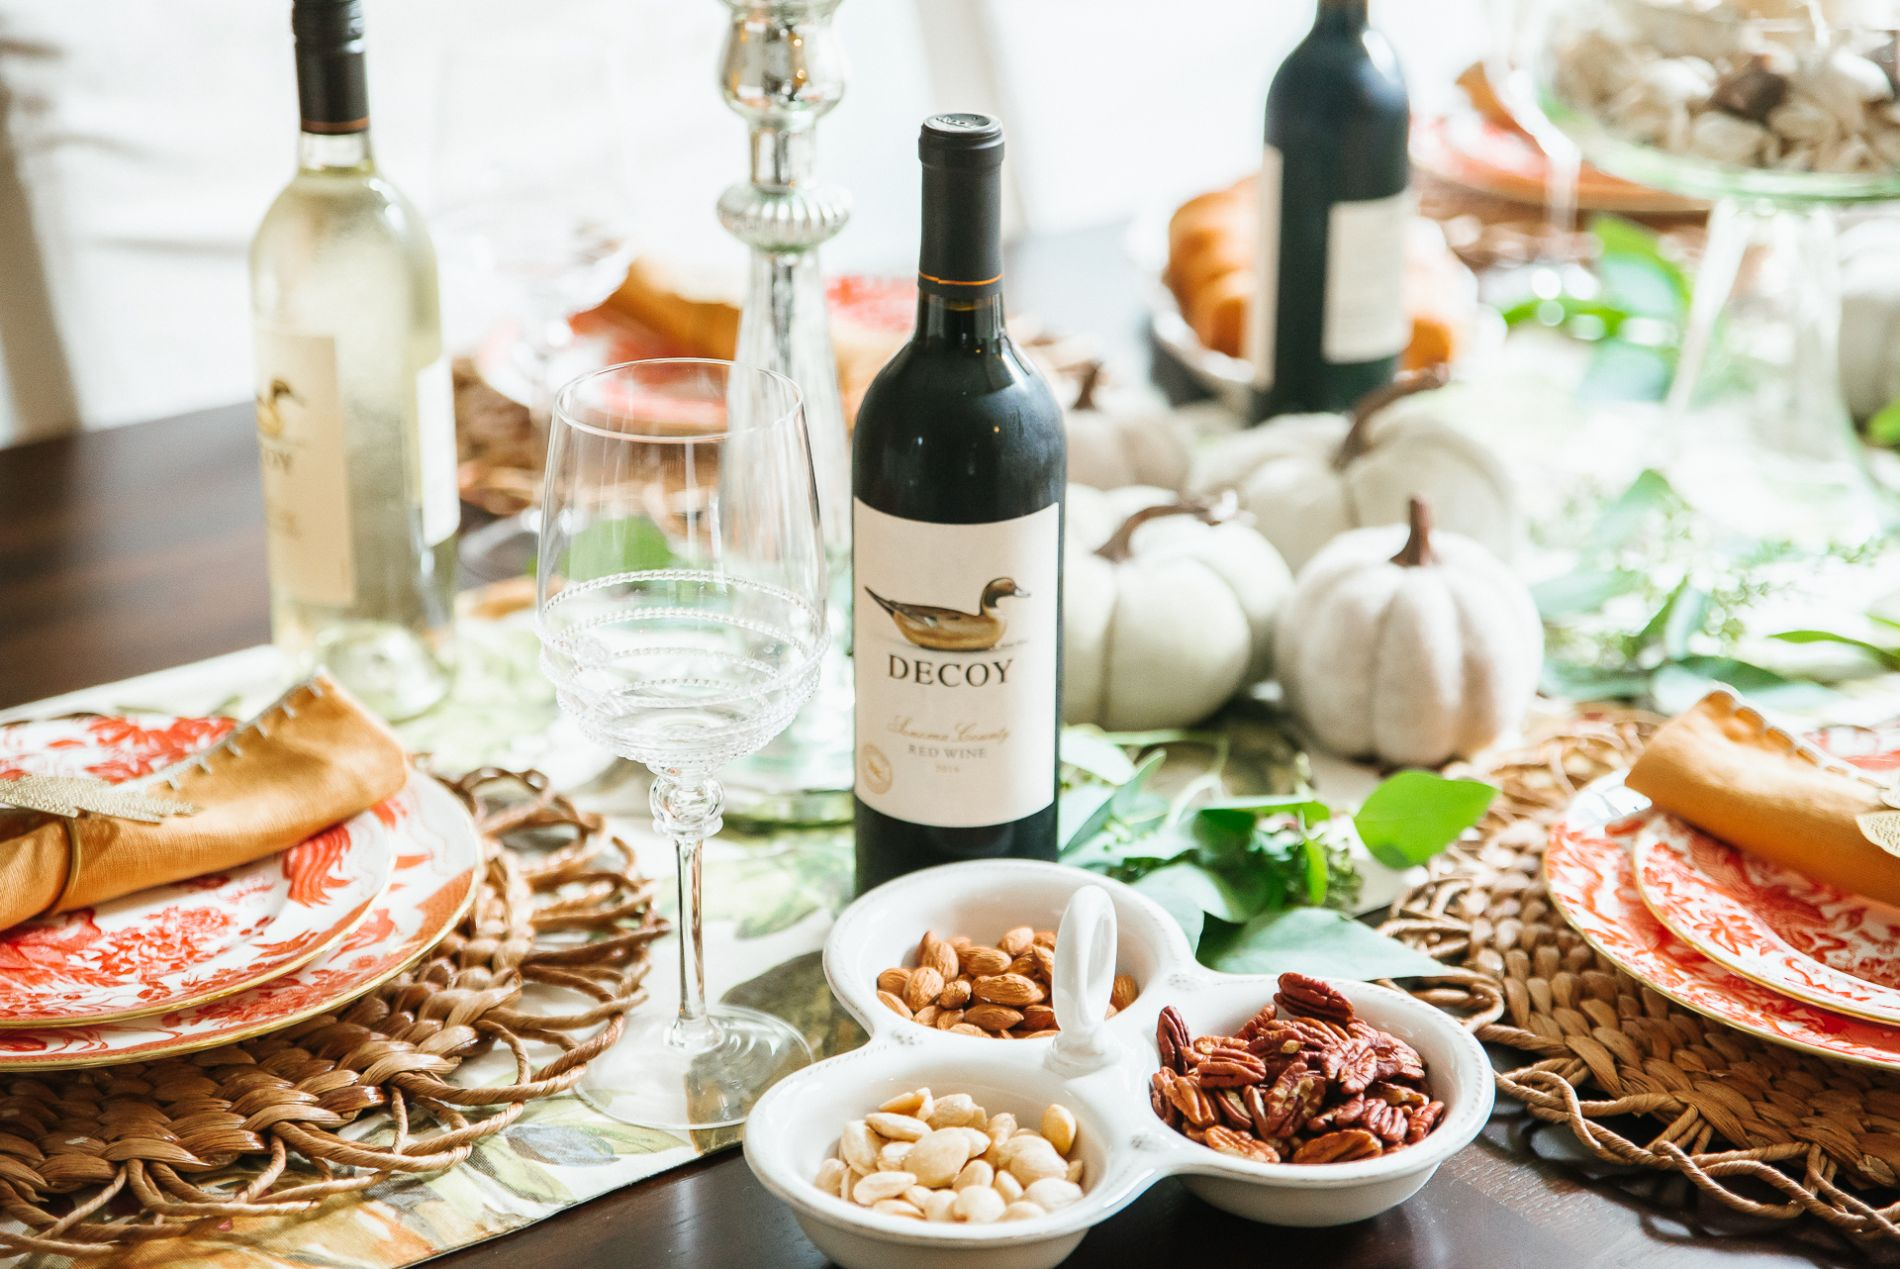 The perfect wine pairings for Thanksgiving